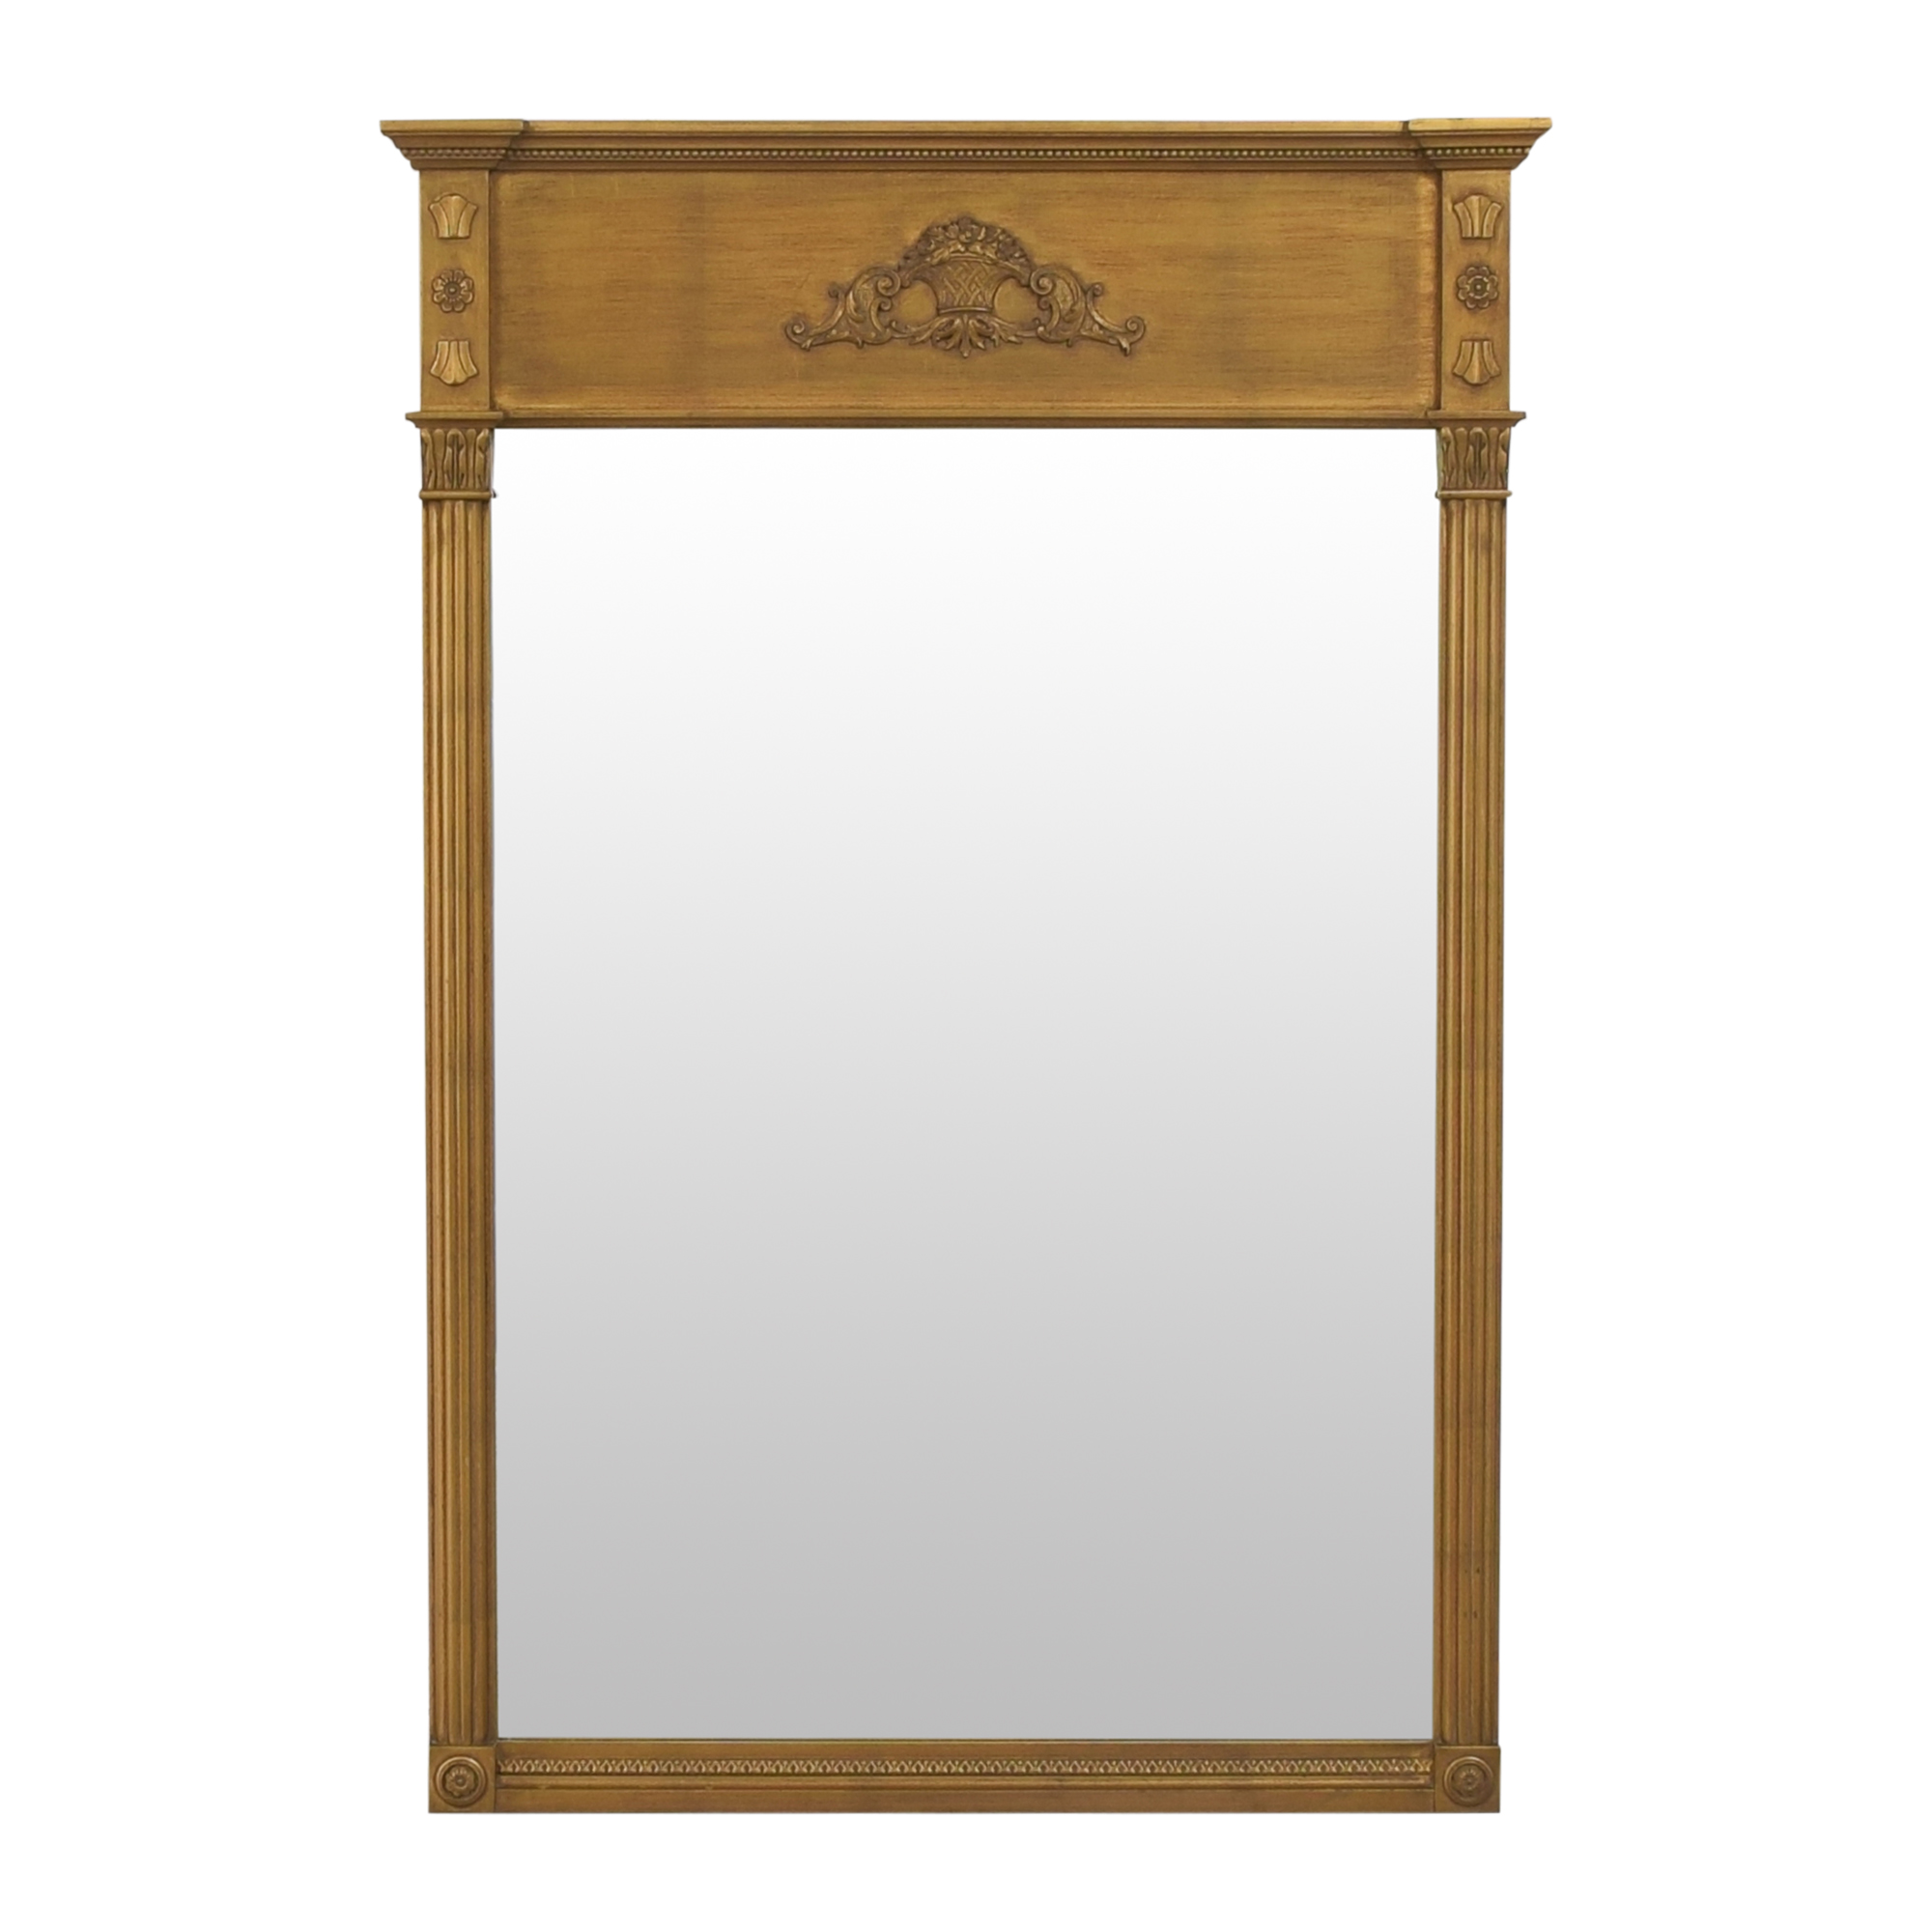 shop Neoclassical-Style Framed Wall Mirror  Decor